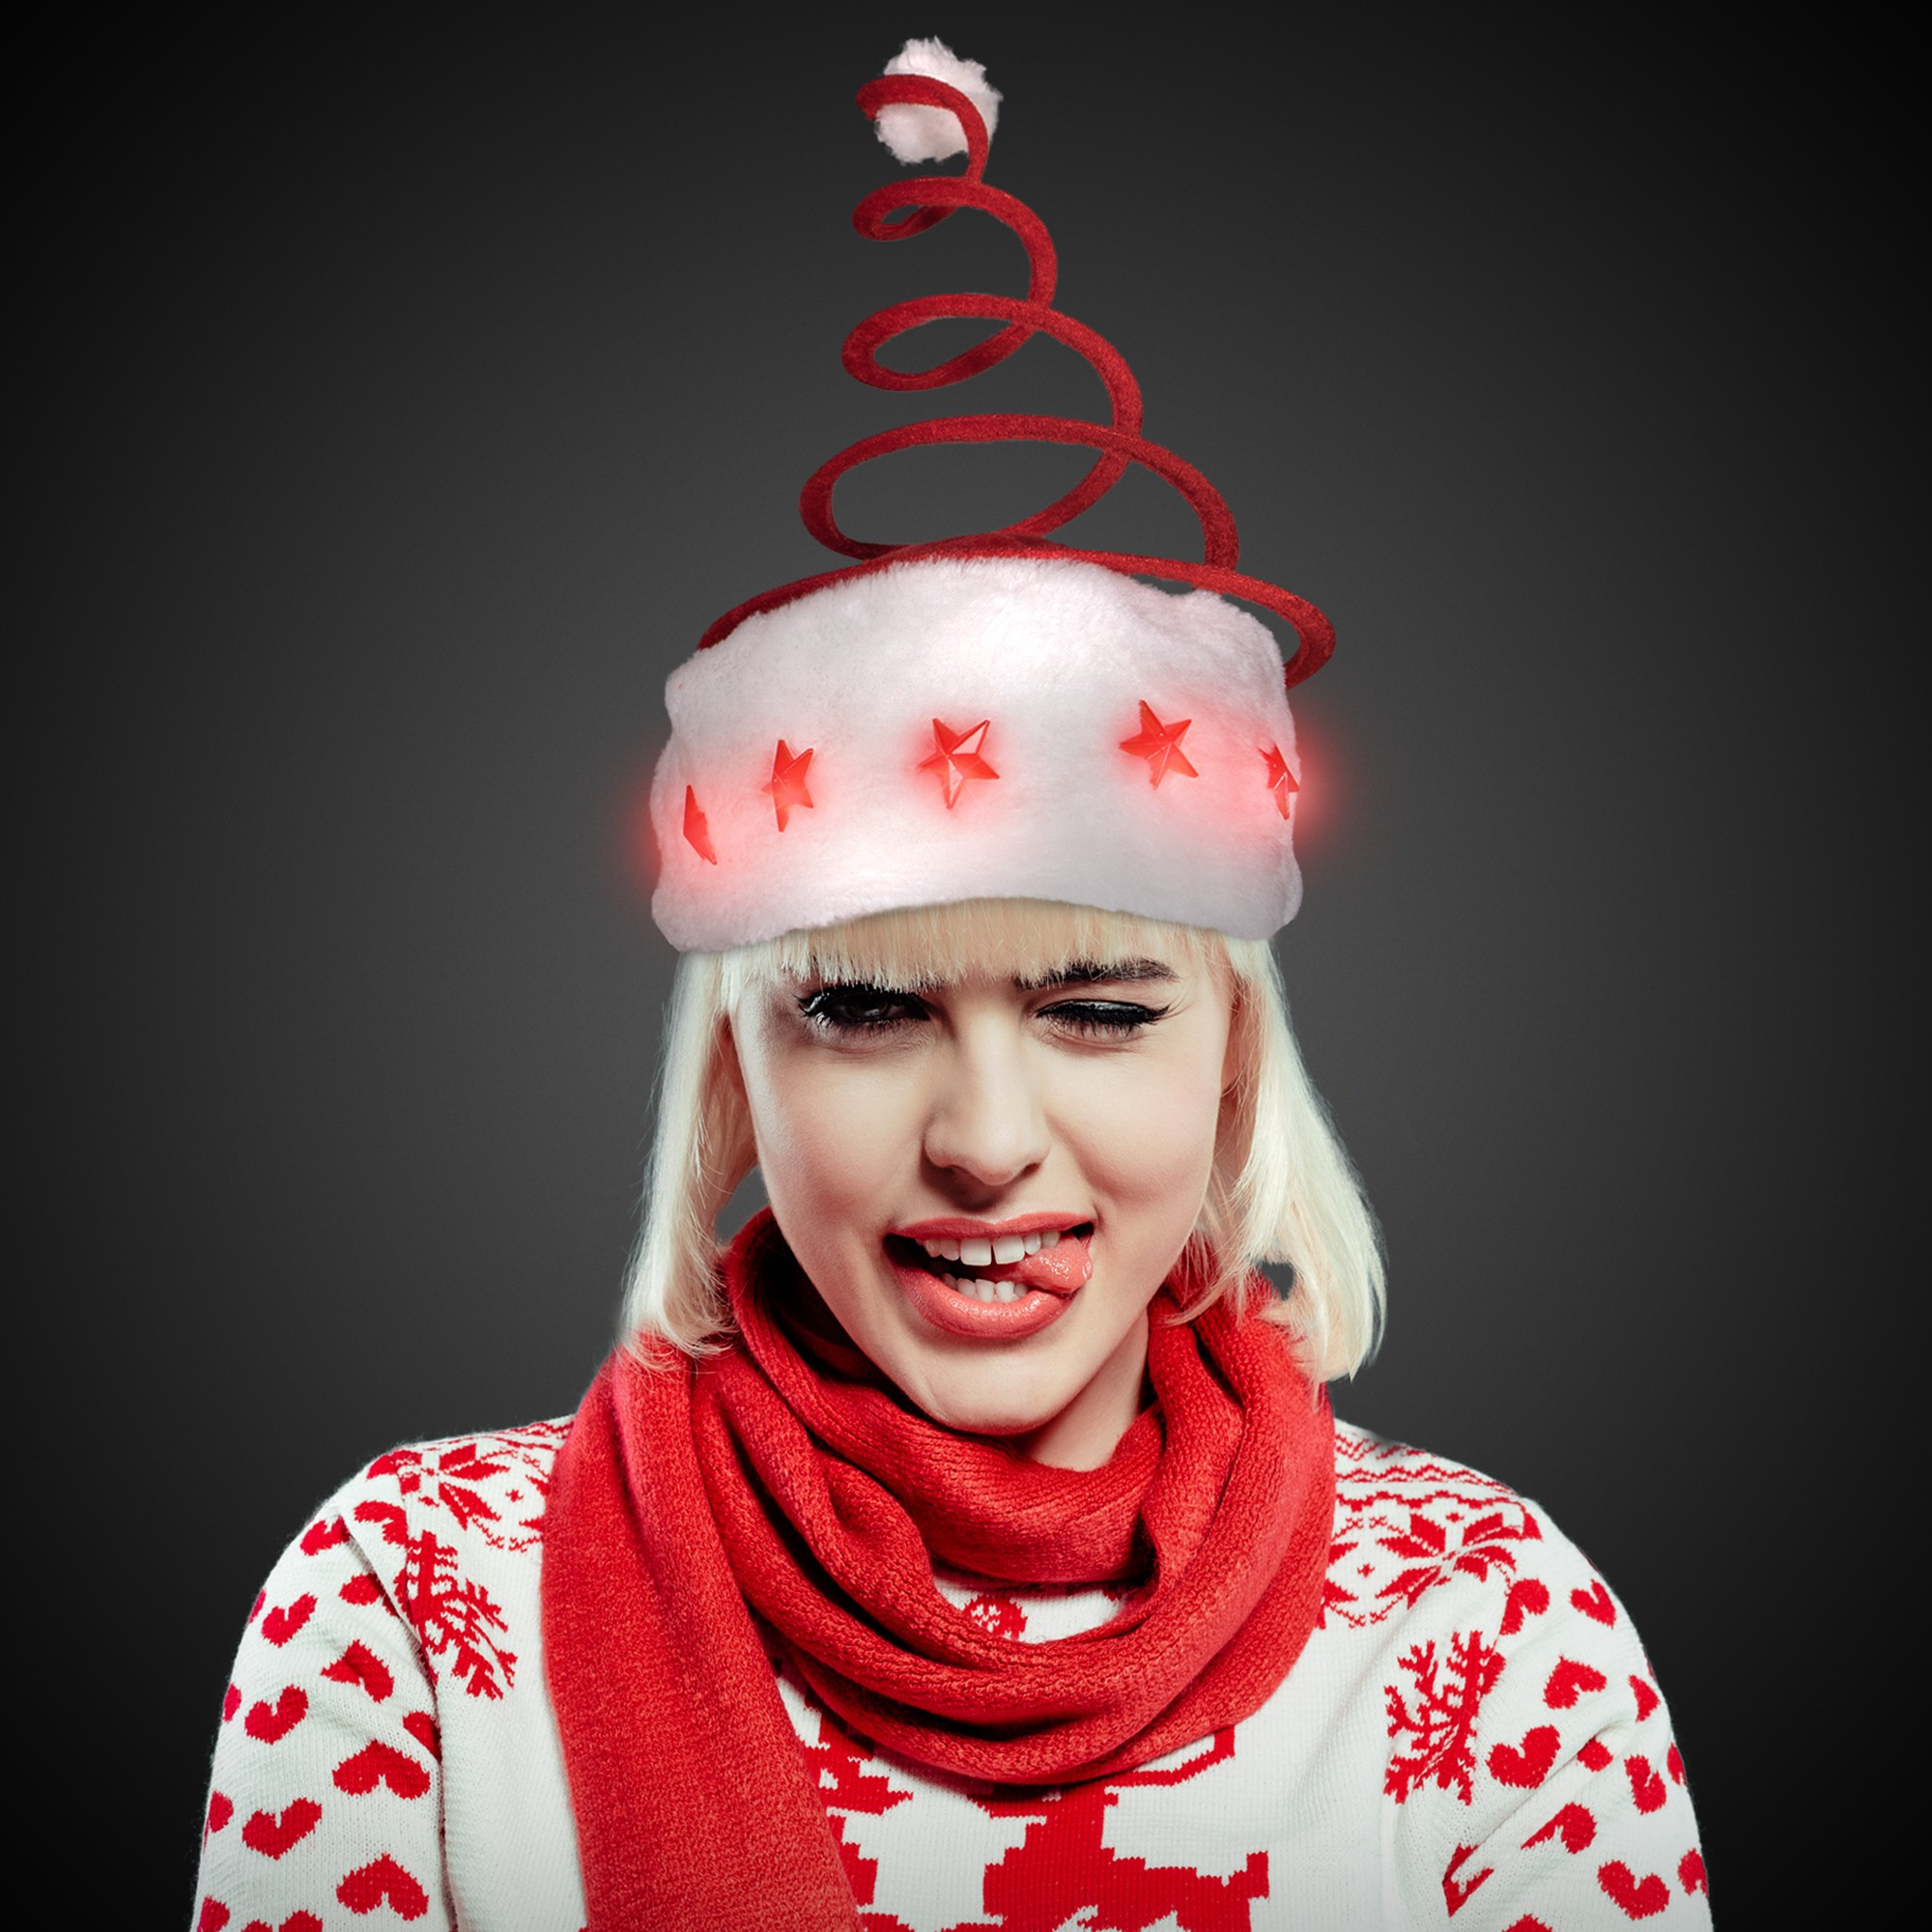 The Spring Coil Santa Hat is a perfect accessory for your Halloween costume this year. Accessorize your costume with our exclusive props, decorations, wigs and many more at Costume SuperCenter. Set your costume above the rest!